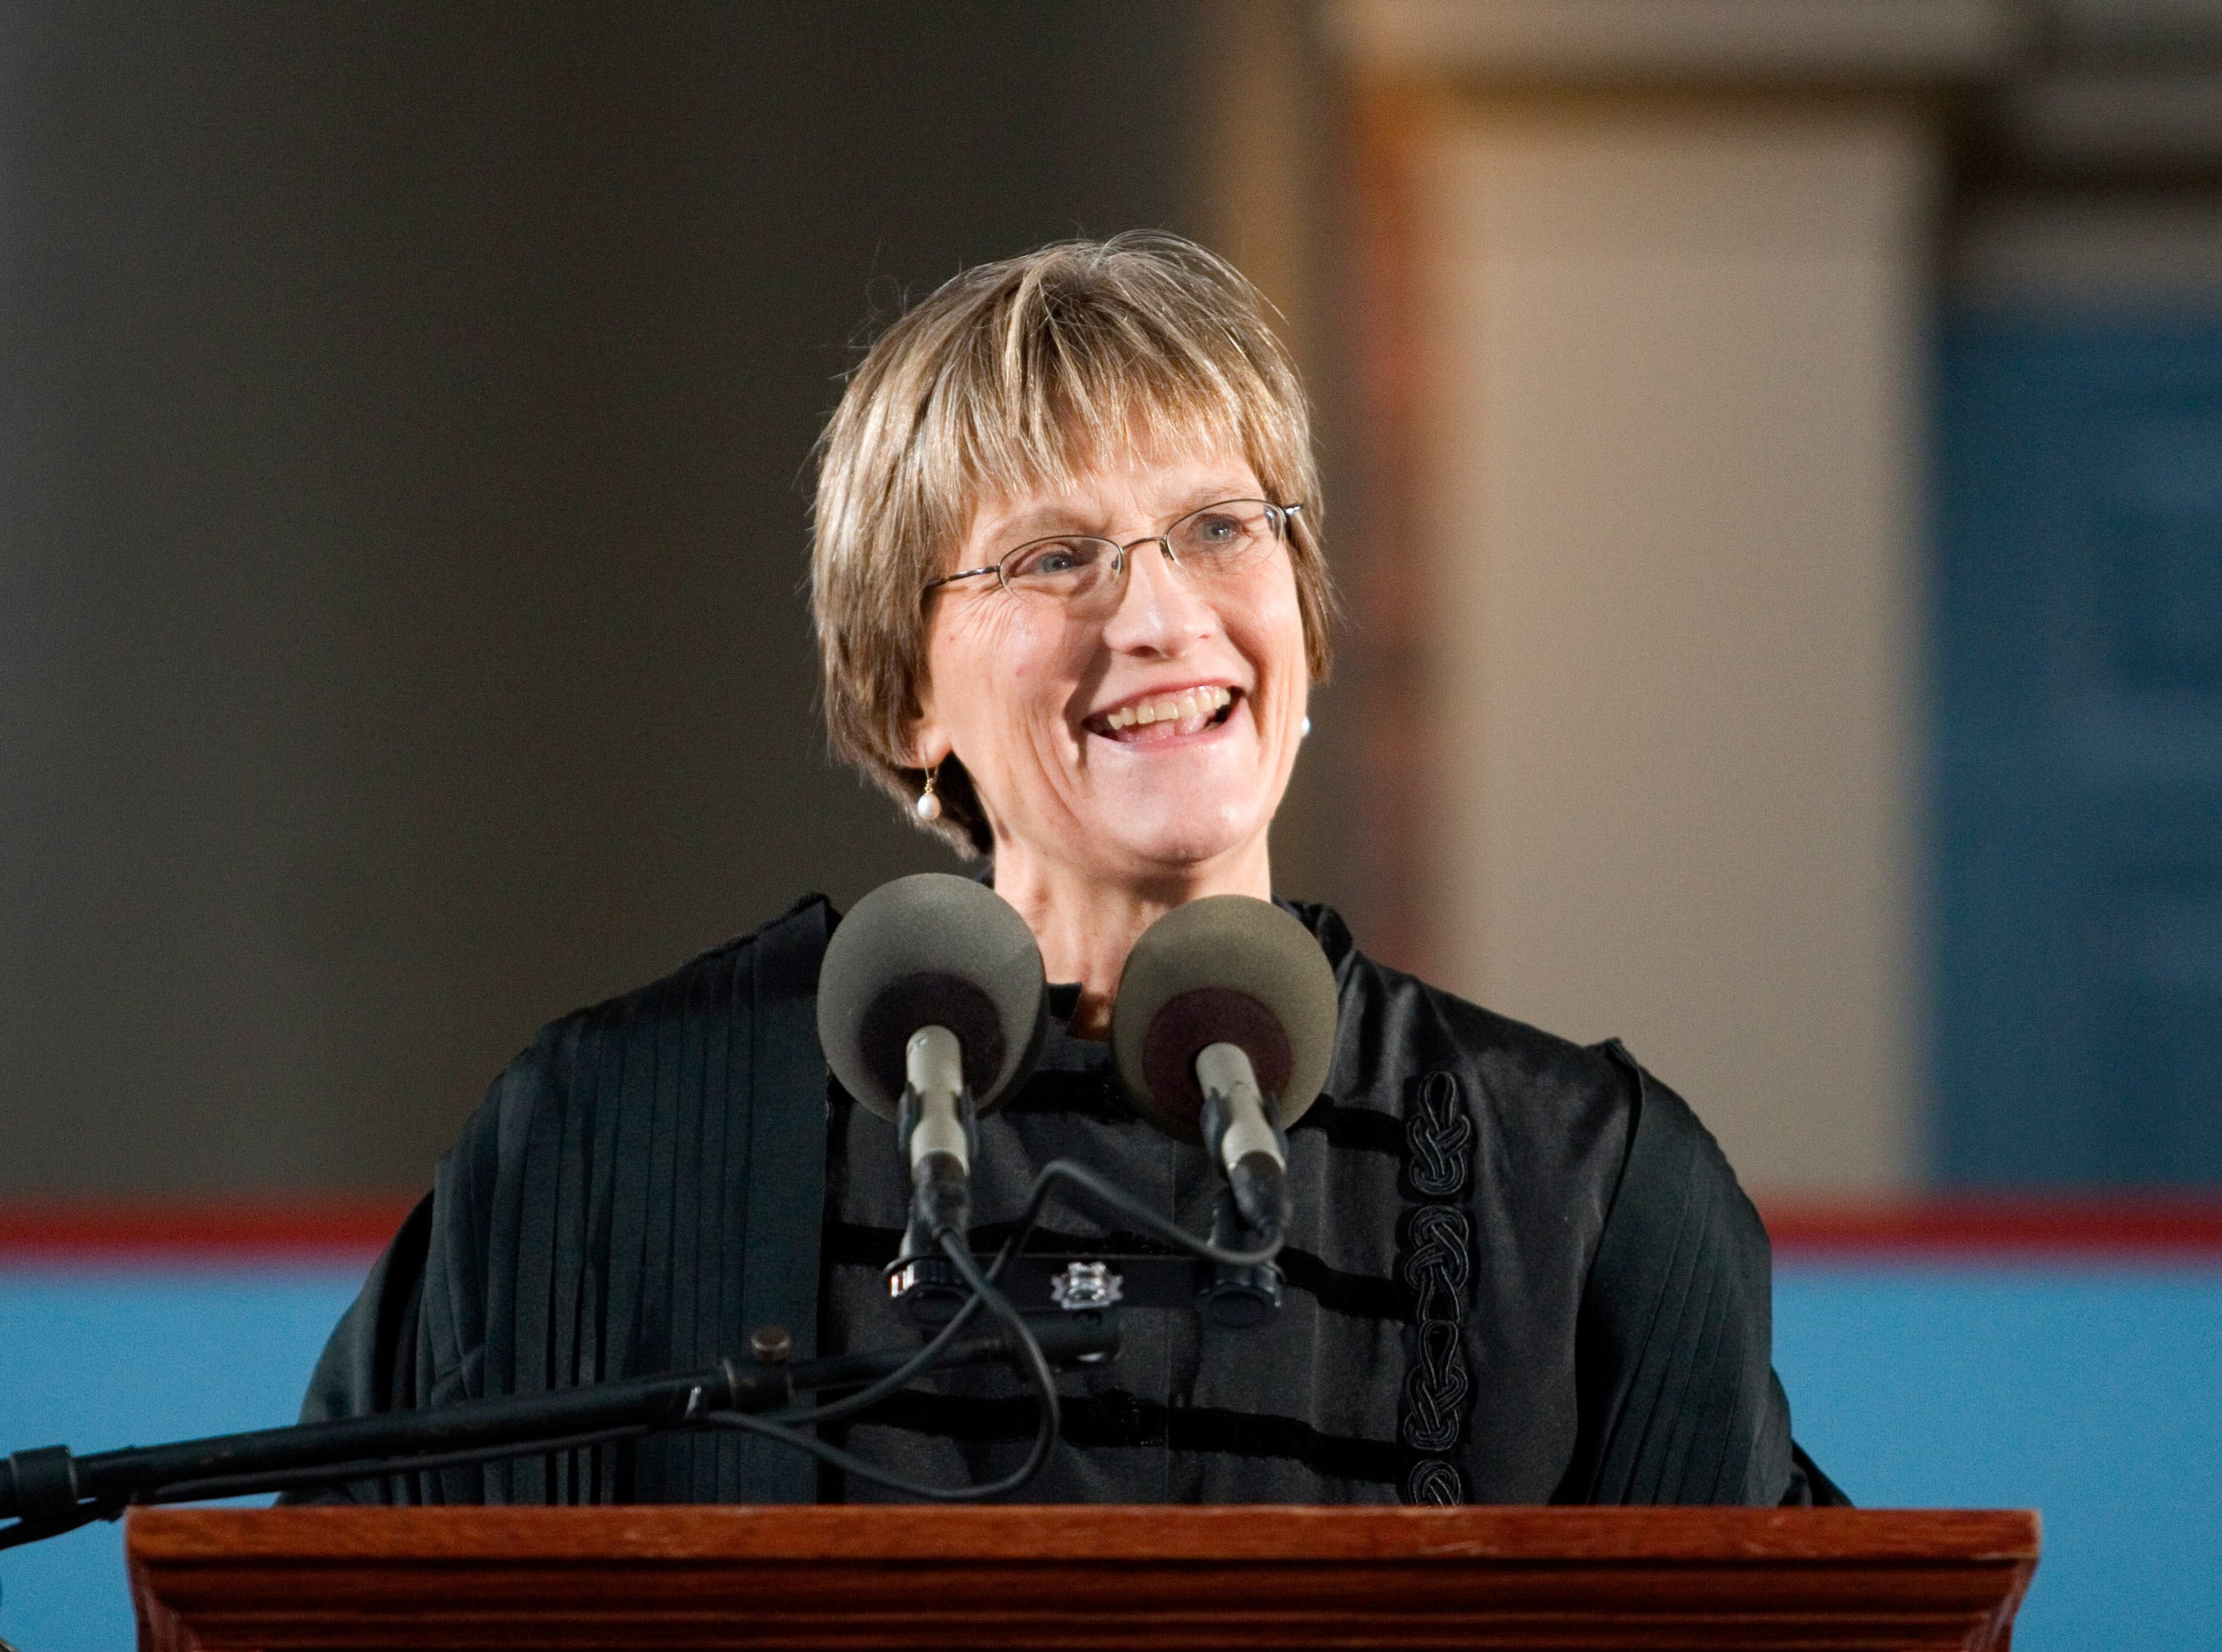 Drew Faust at podium during installation as Harvard president.